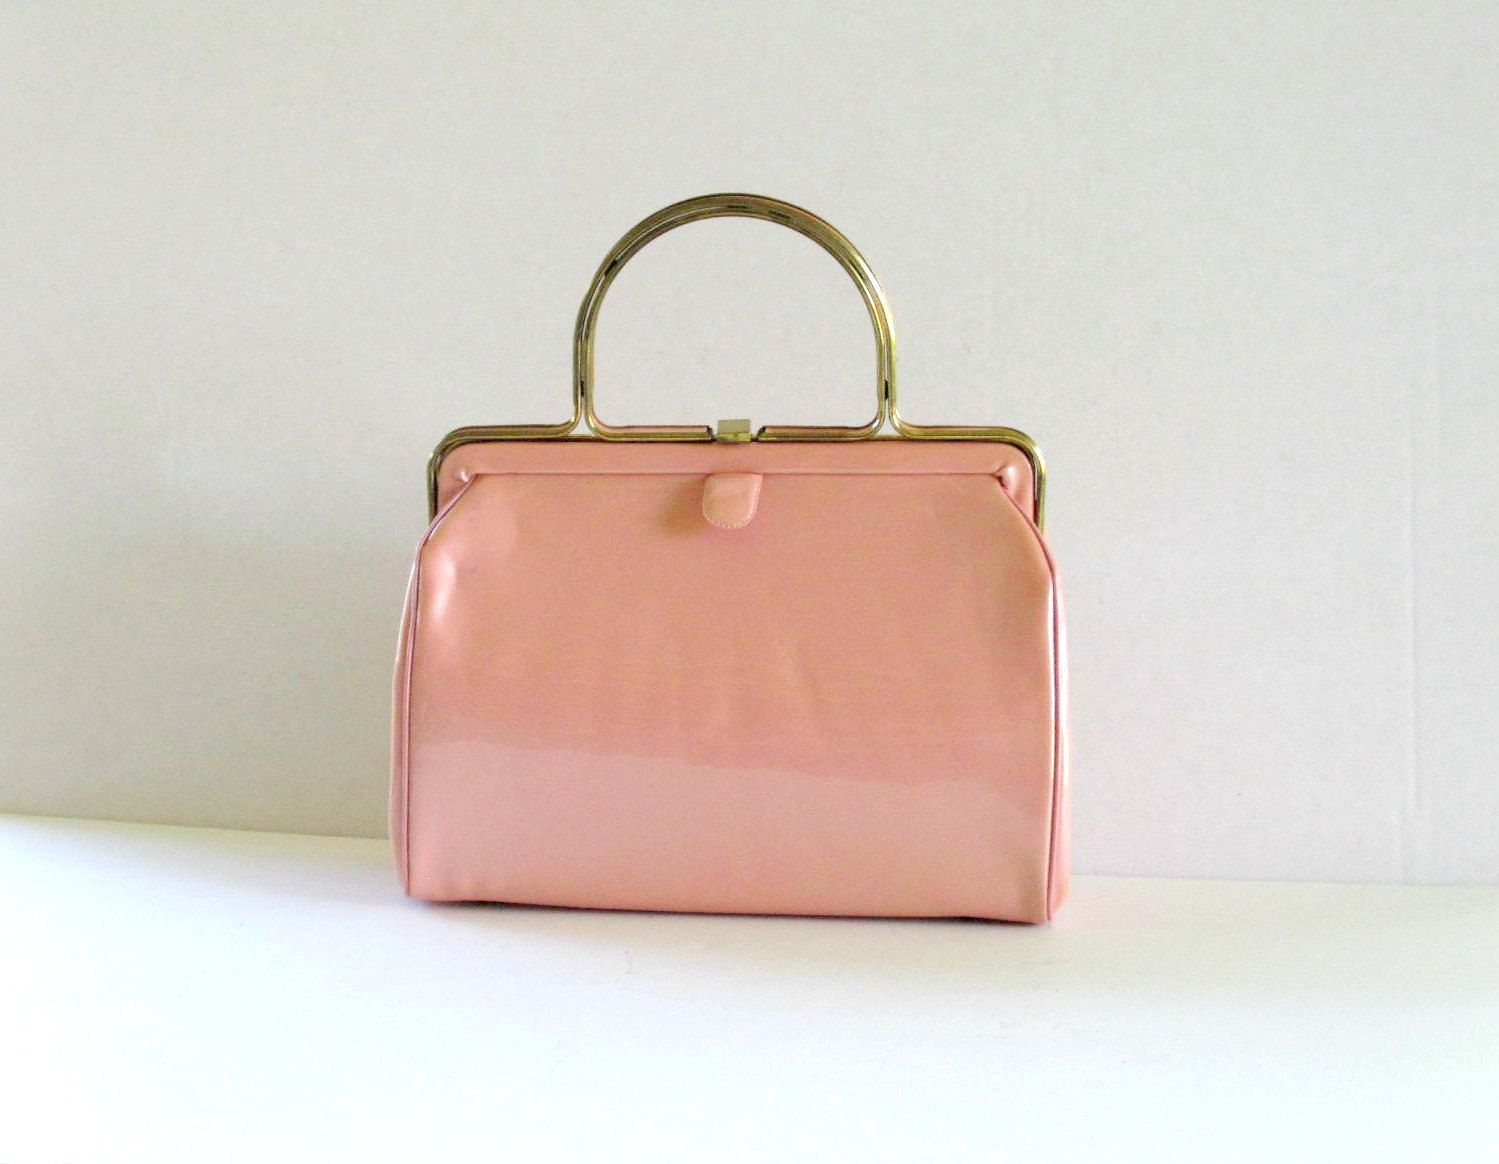 30bfe63642c9a Vintage Handbag Purse Bag - Patent Leather Pink - Pink Handbag ...